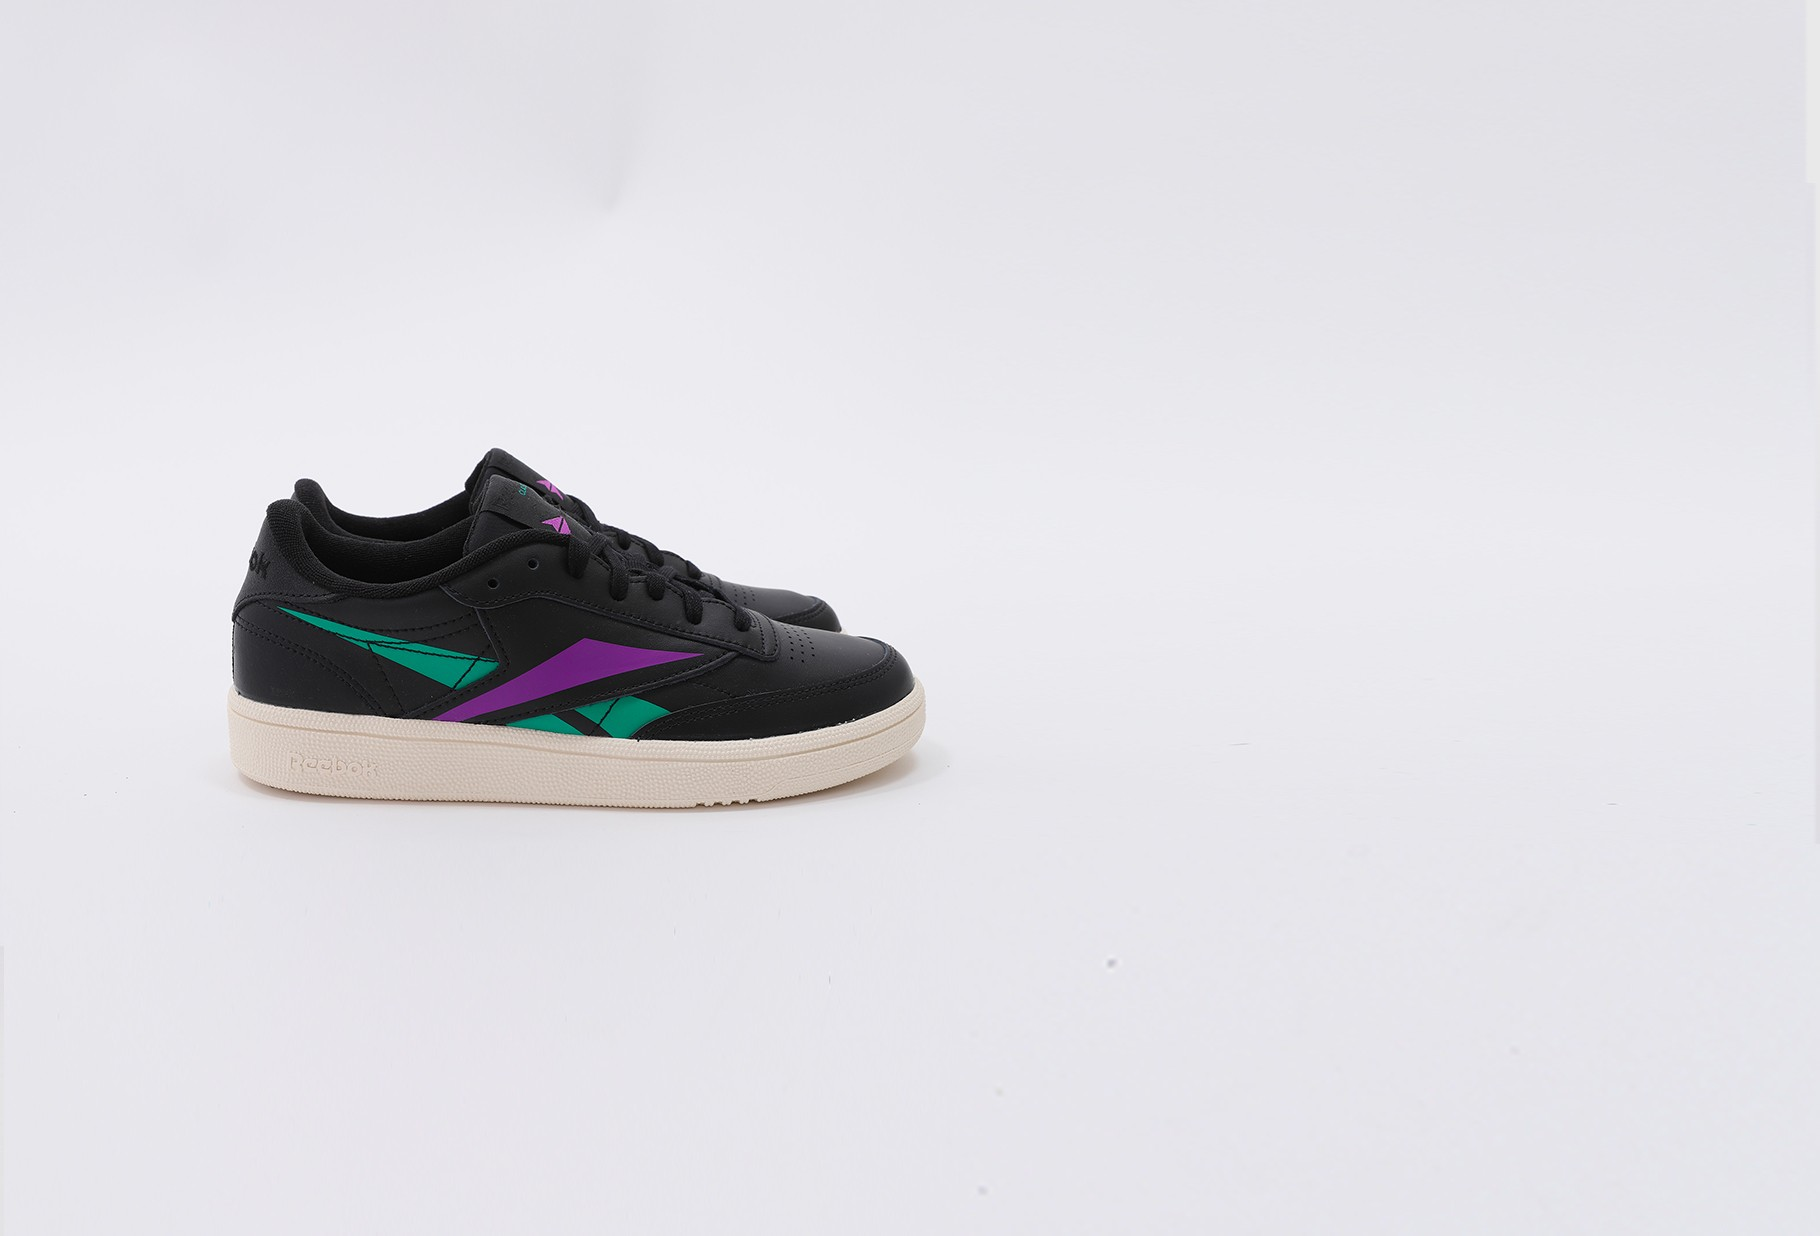 REEBOK FOR WOMAN / Club c 85 Black emeral